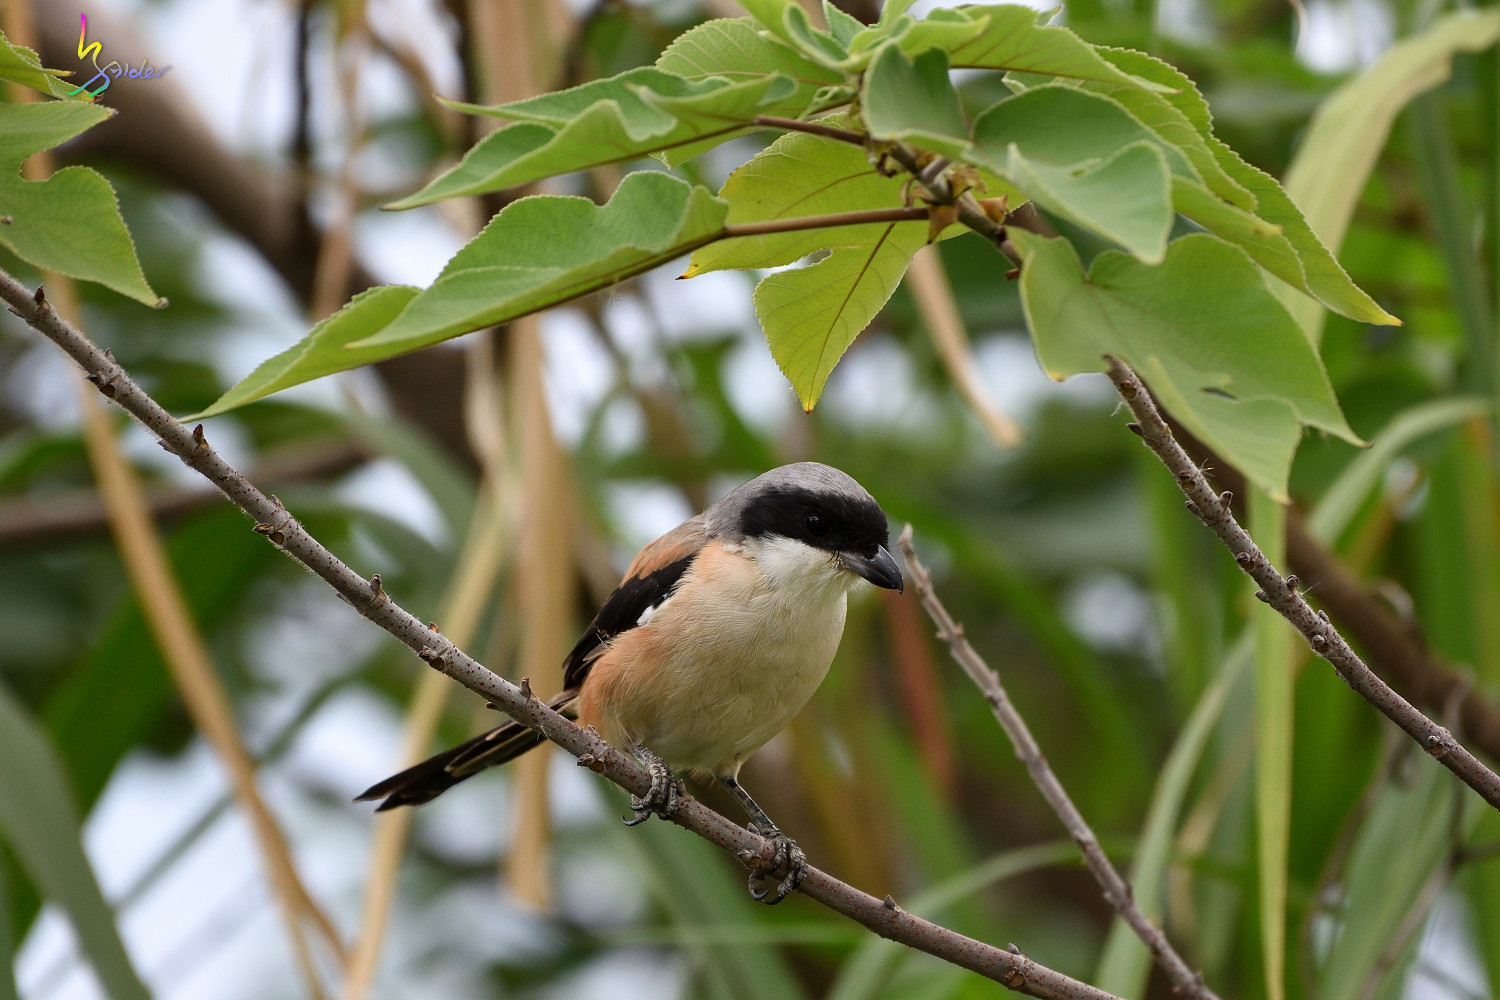 Long-tailed_Shrike_0713